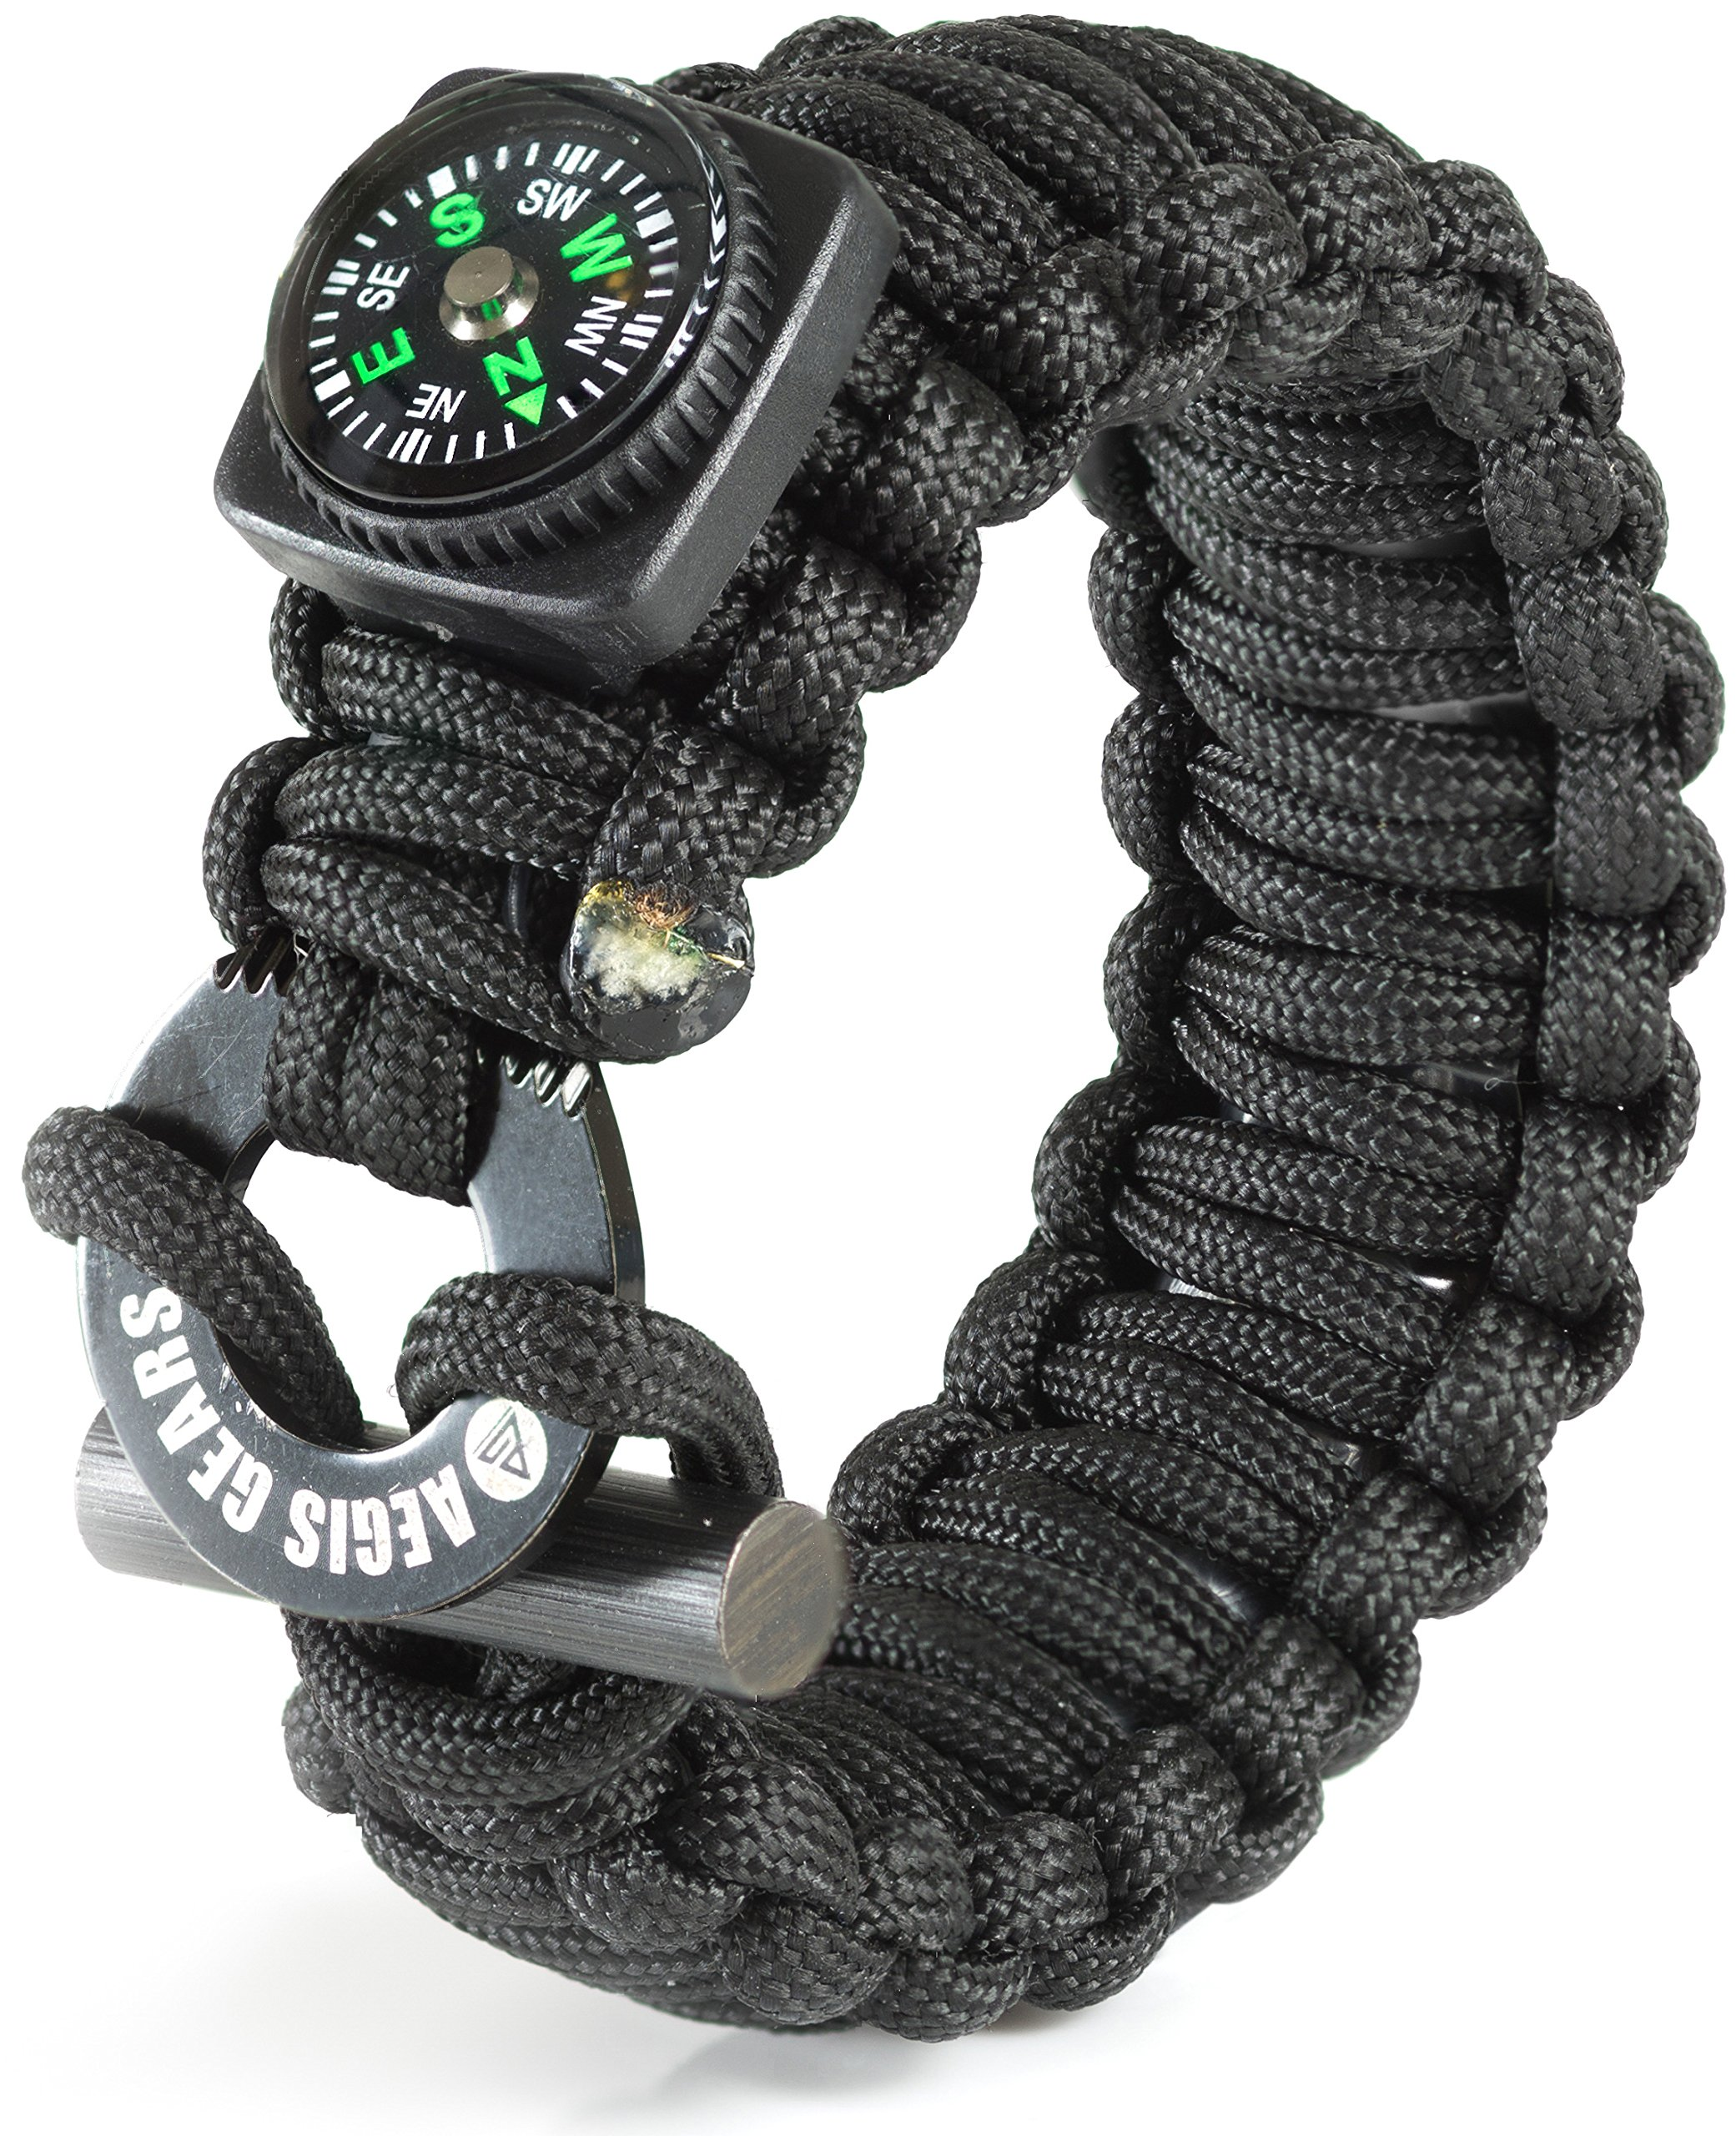 Tactical Paracord Bracelet X Series By AEGIS GEARS - Ultimate Emergency Survival Kit - Adjustable Size, Fire Starter, Compass, Fishing Kit, Milspec 550 Paracord & More. EDC Outdoor Camping Gear